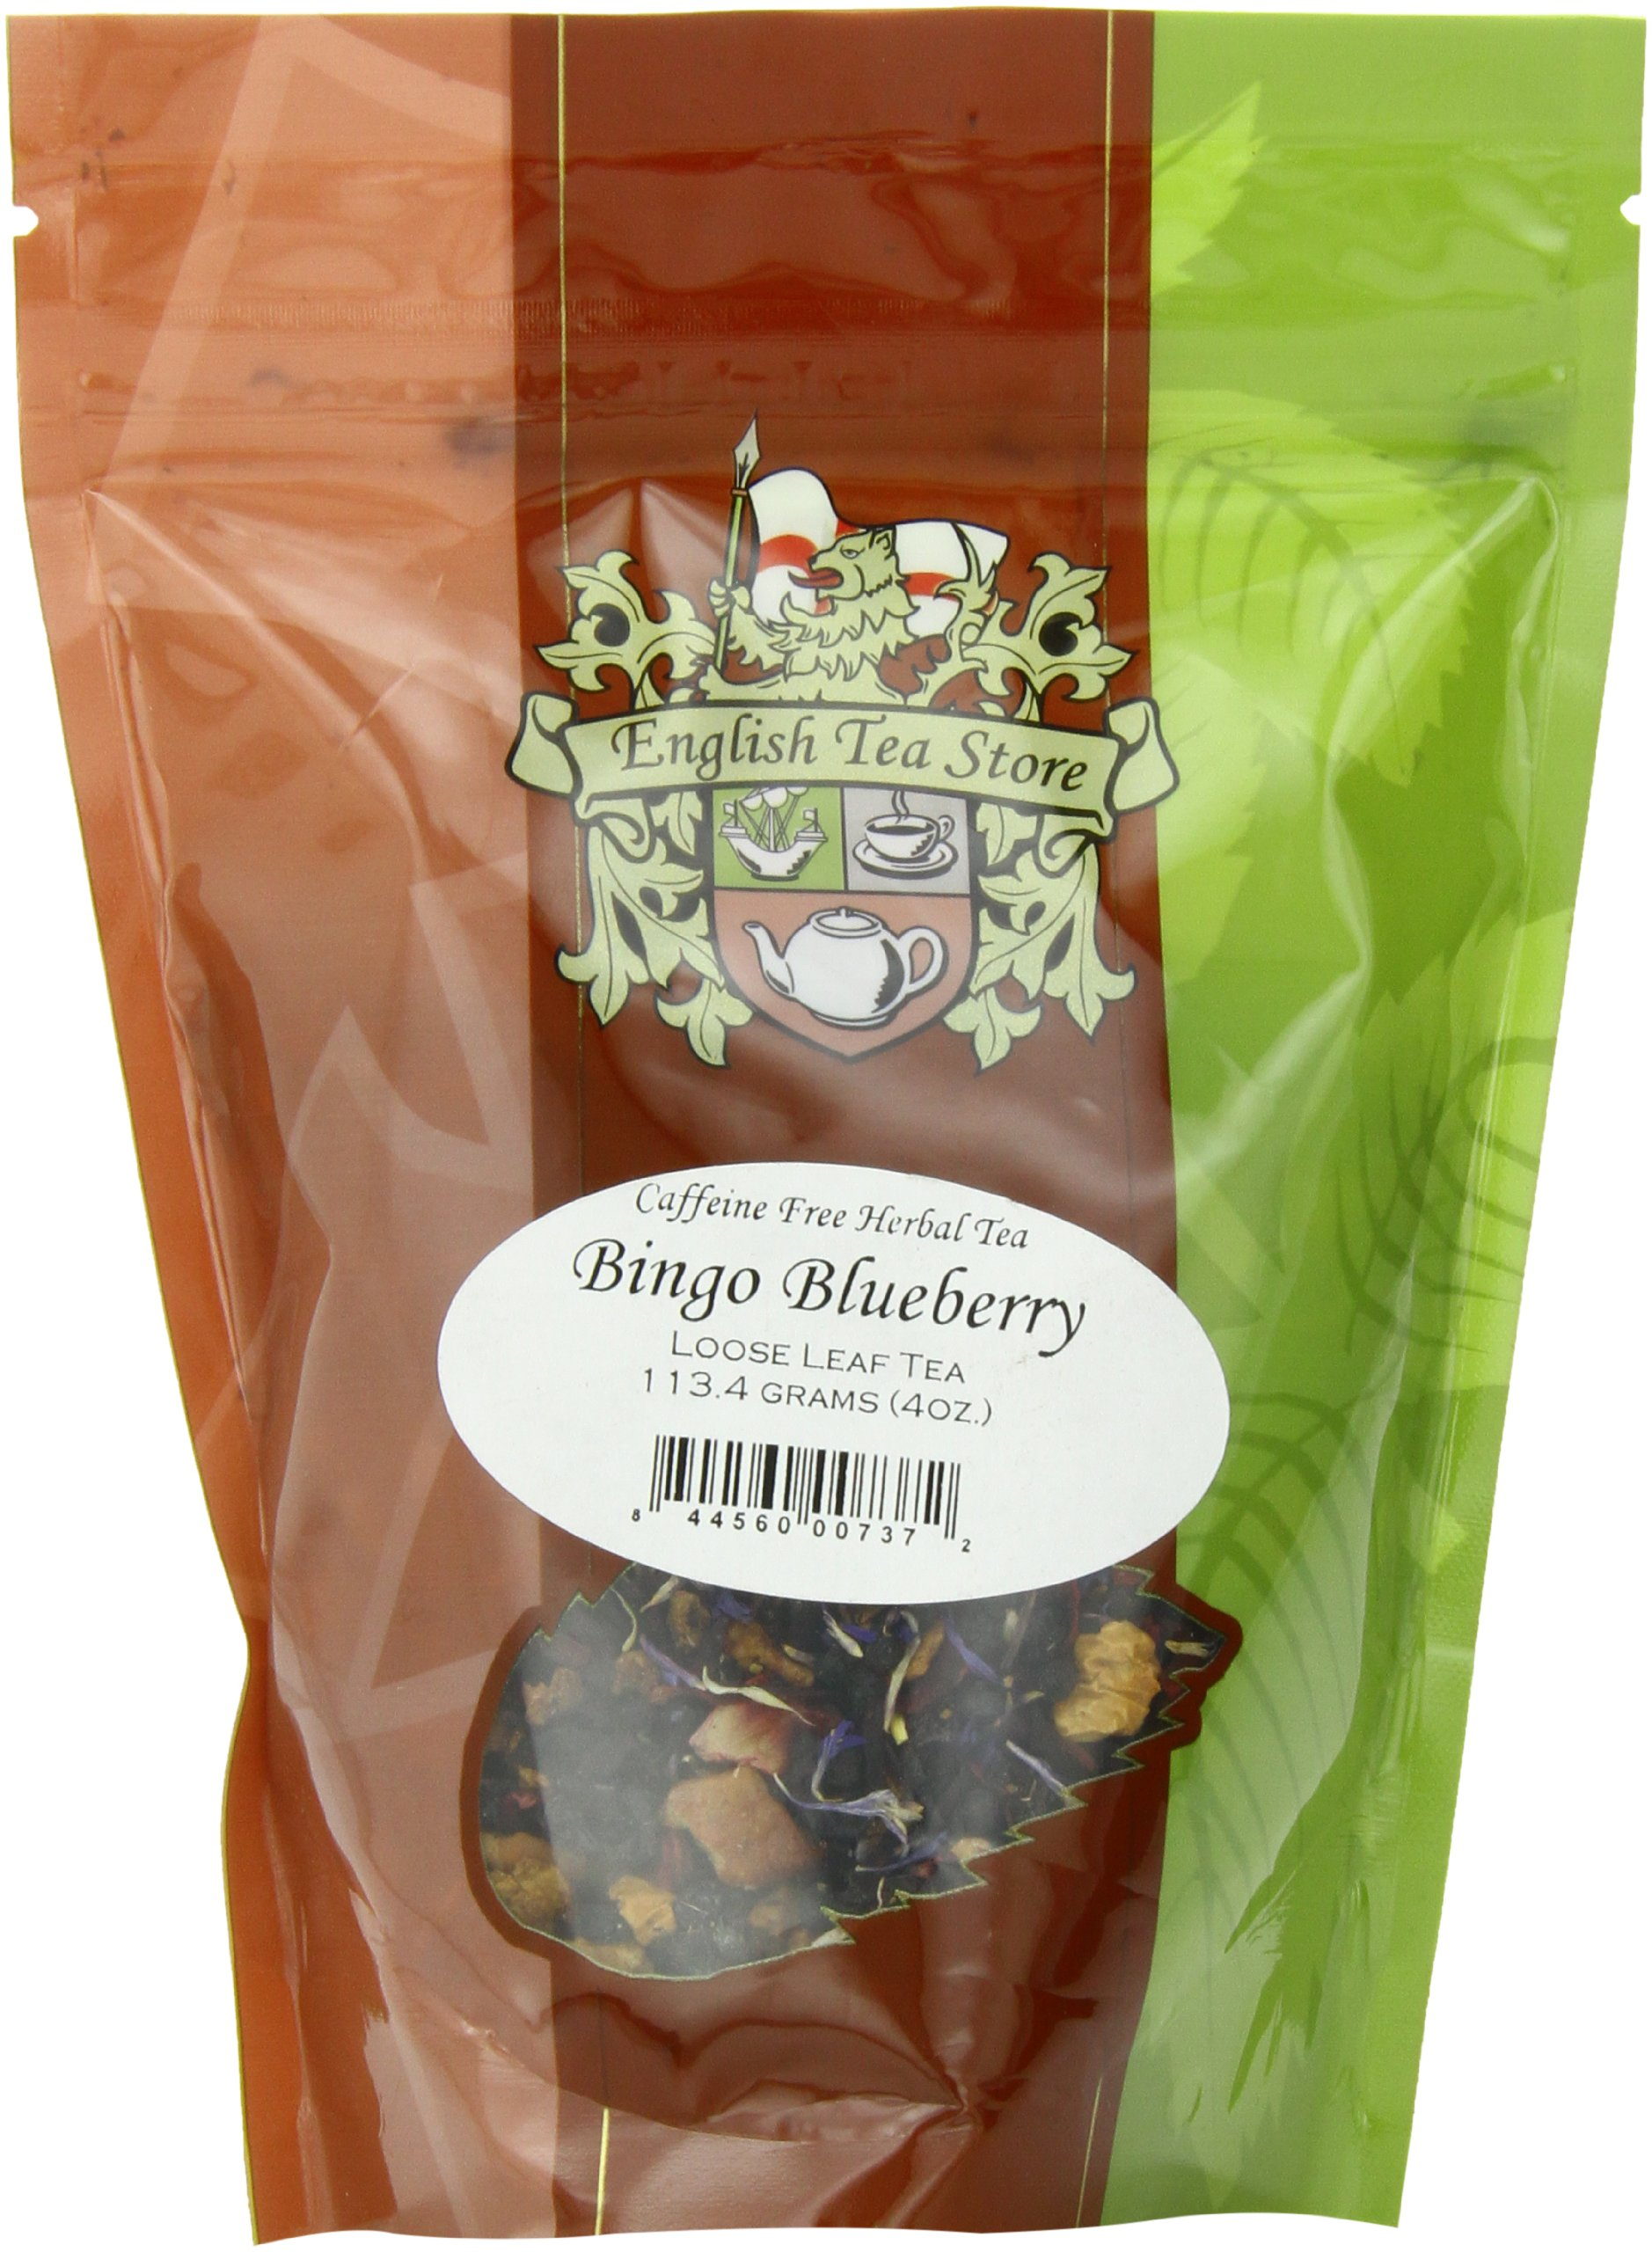 English Tea Store Loose Leaf, Bingo Blueberry Herbal Tea Pouches, 4 Ounce by English Tea Store